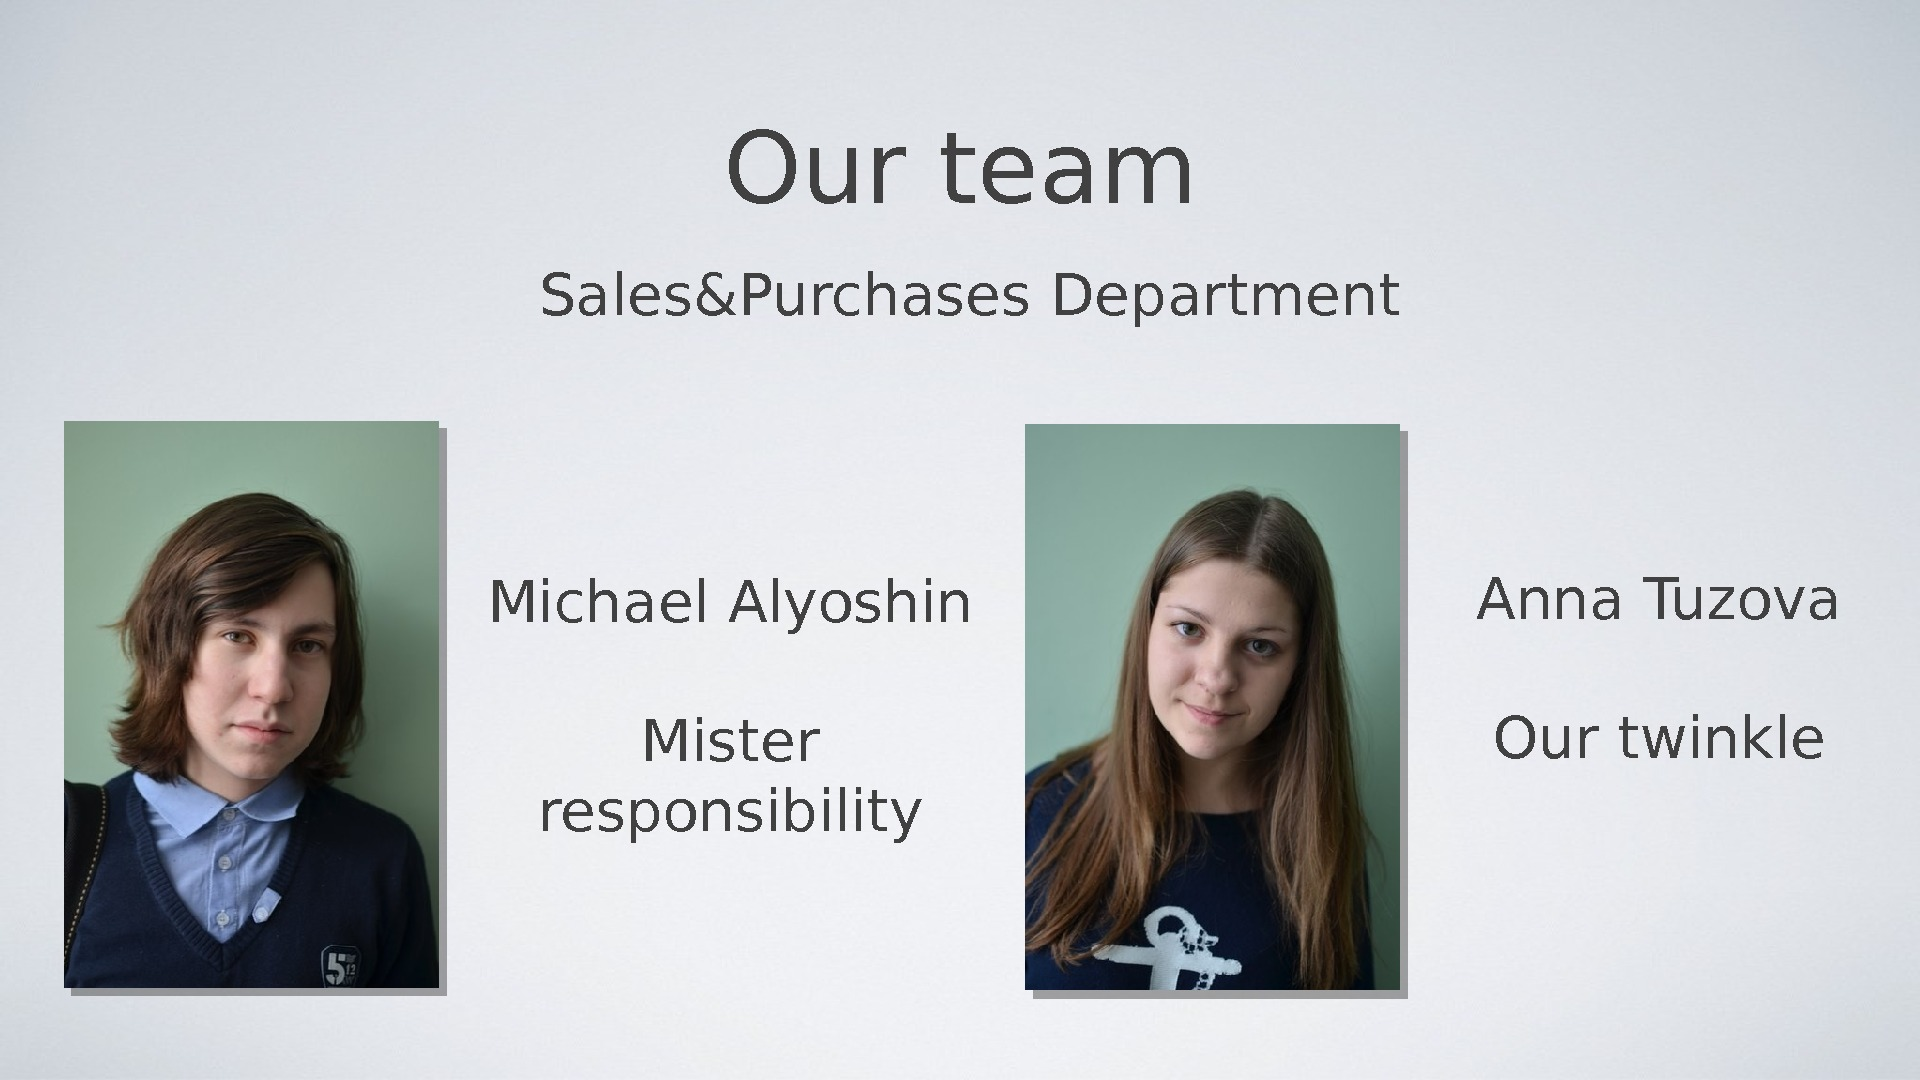 Our team Sales&Purchases Department Michael Alyoshin Mister responsibility Anna Tuzova Our twinkle